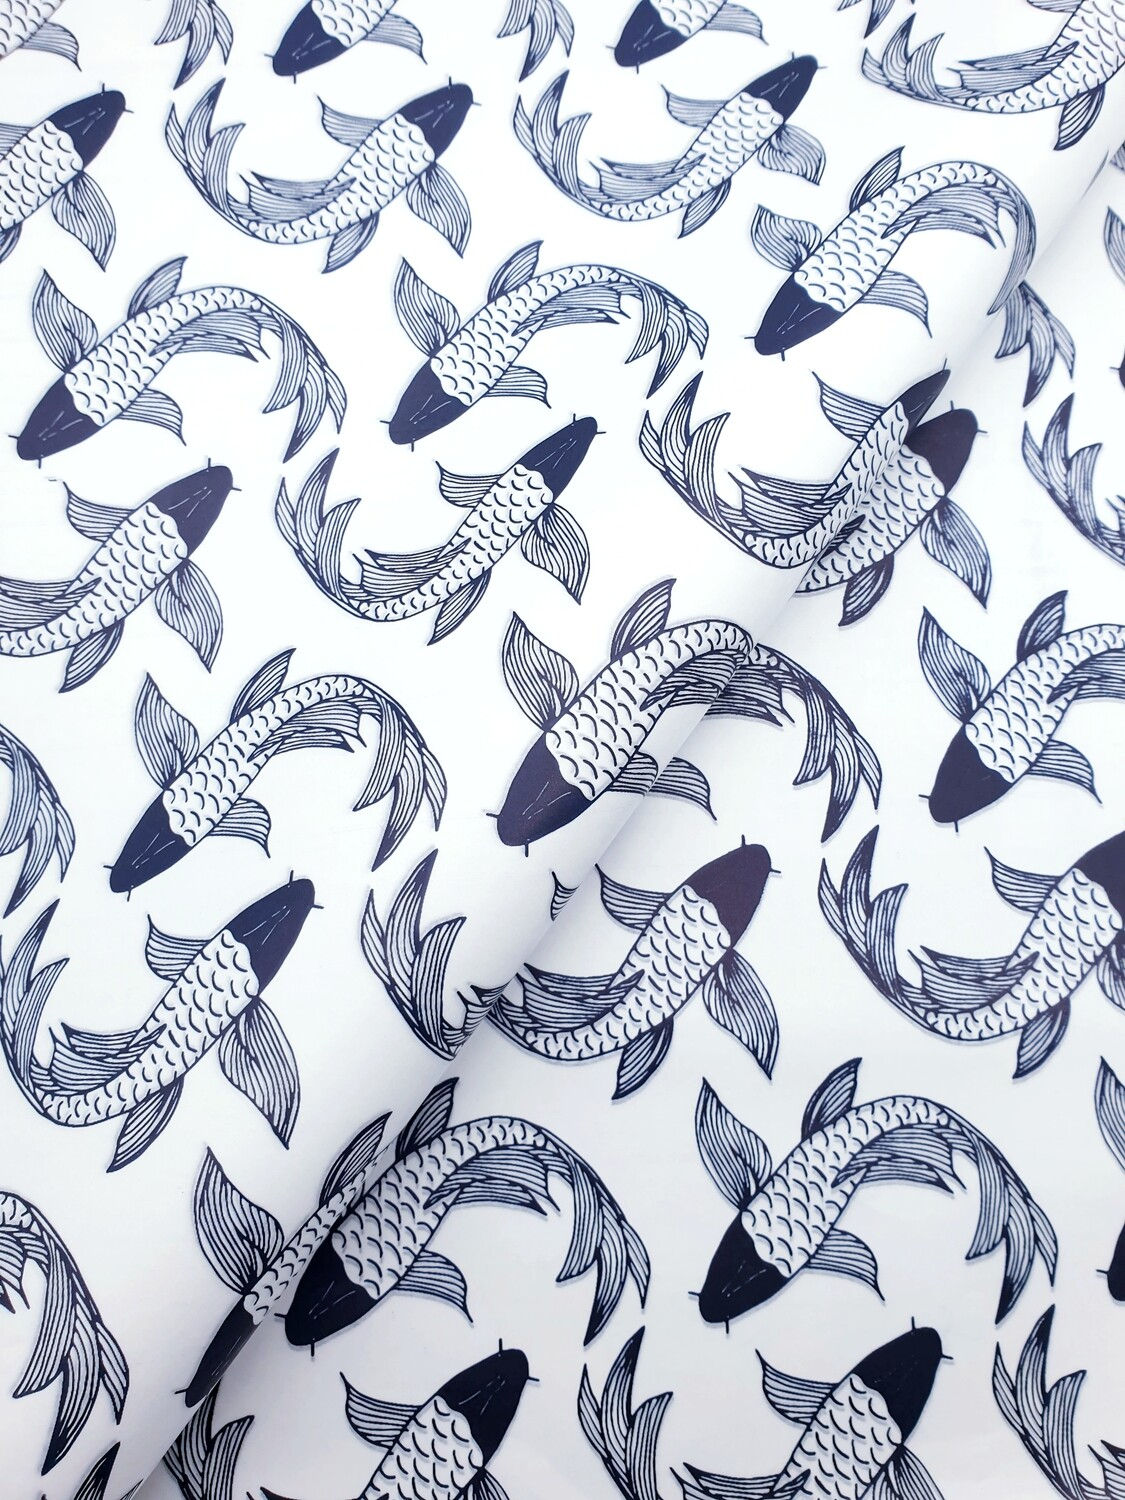 Tissue Paper - Fish - Navy On White (Qty 25)